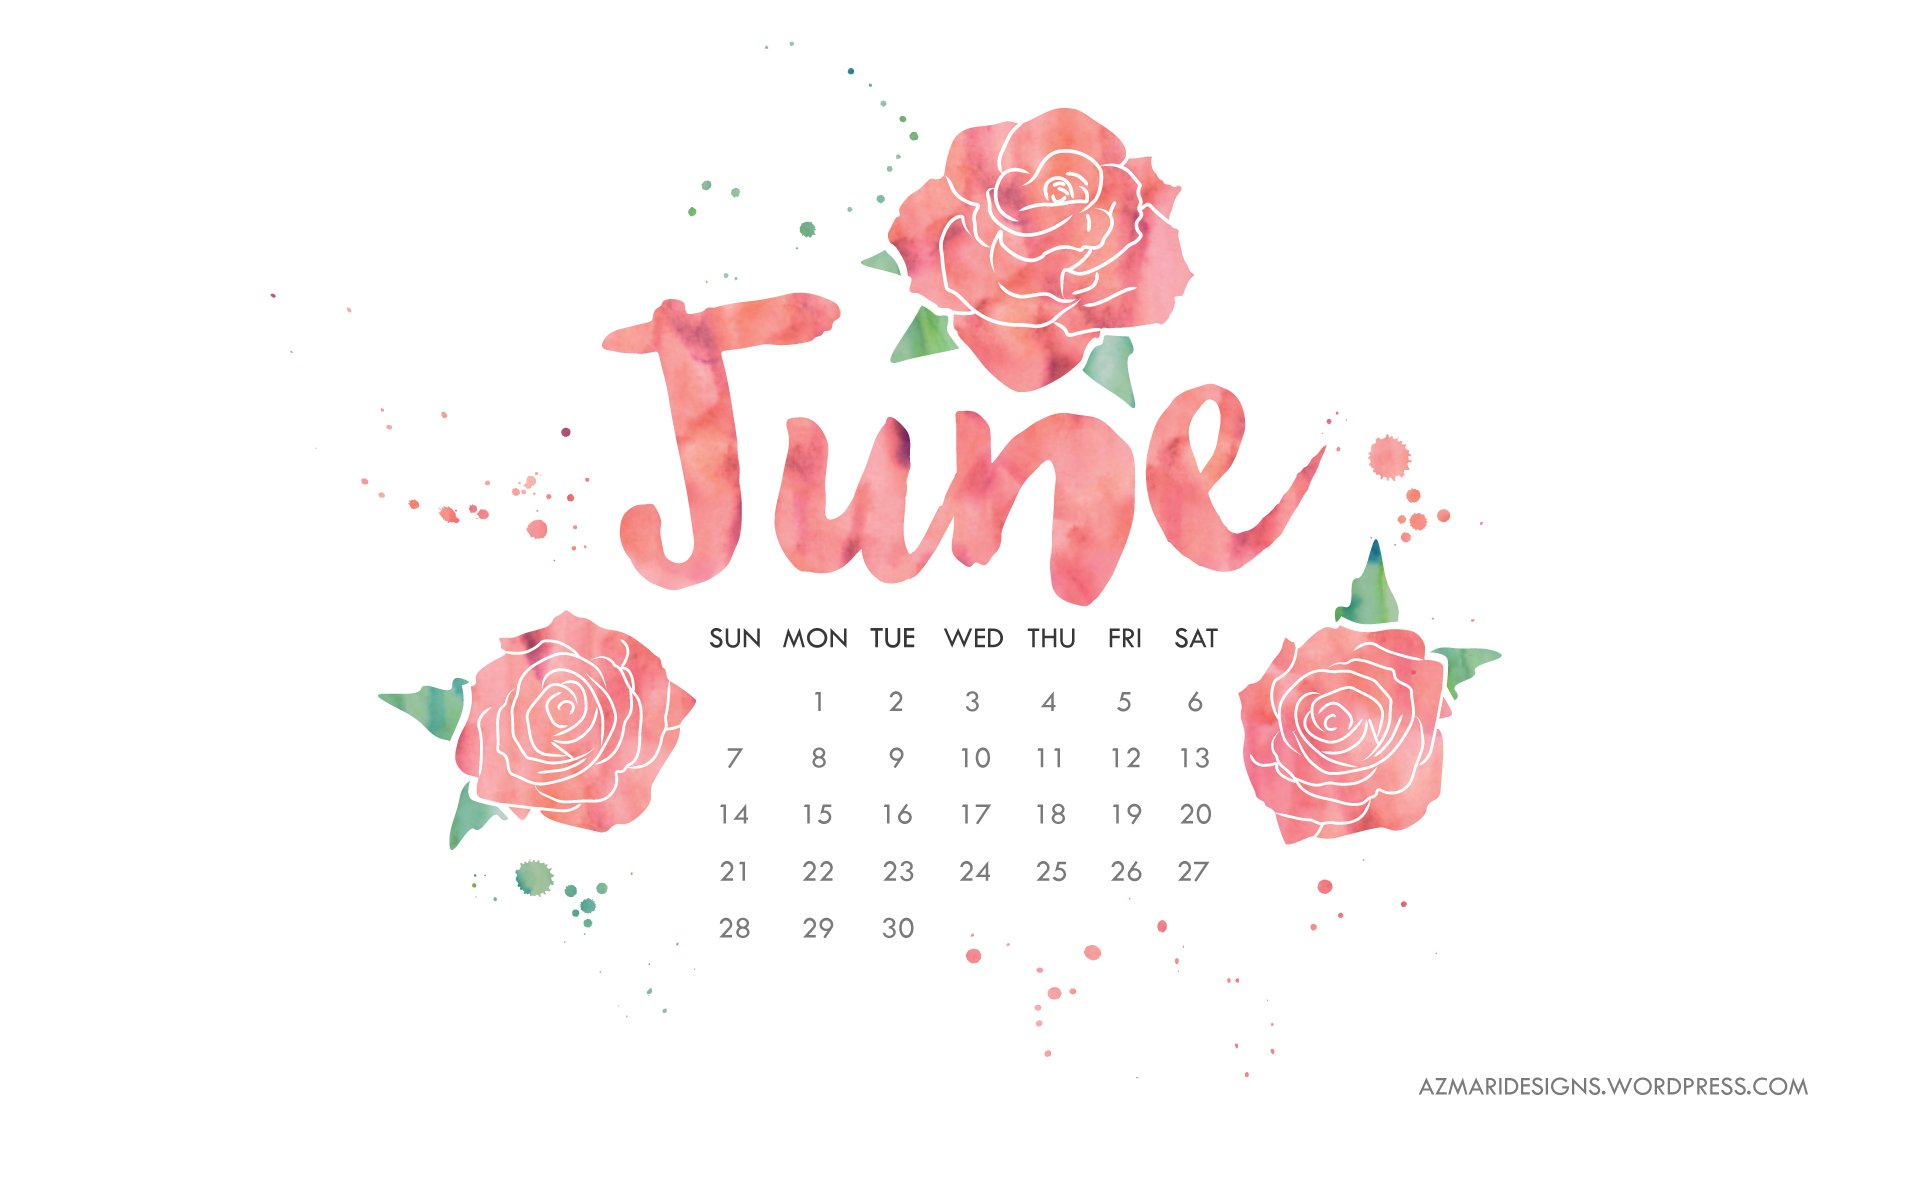 June 2015 Desktop Wallpaper Calendar Azmari Designs 1920x1200